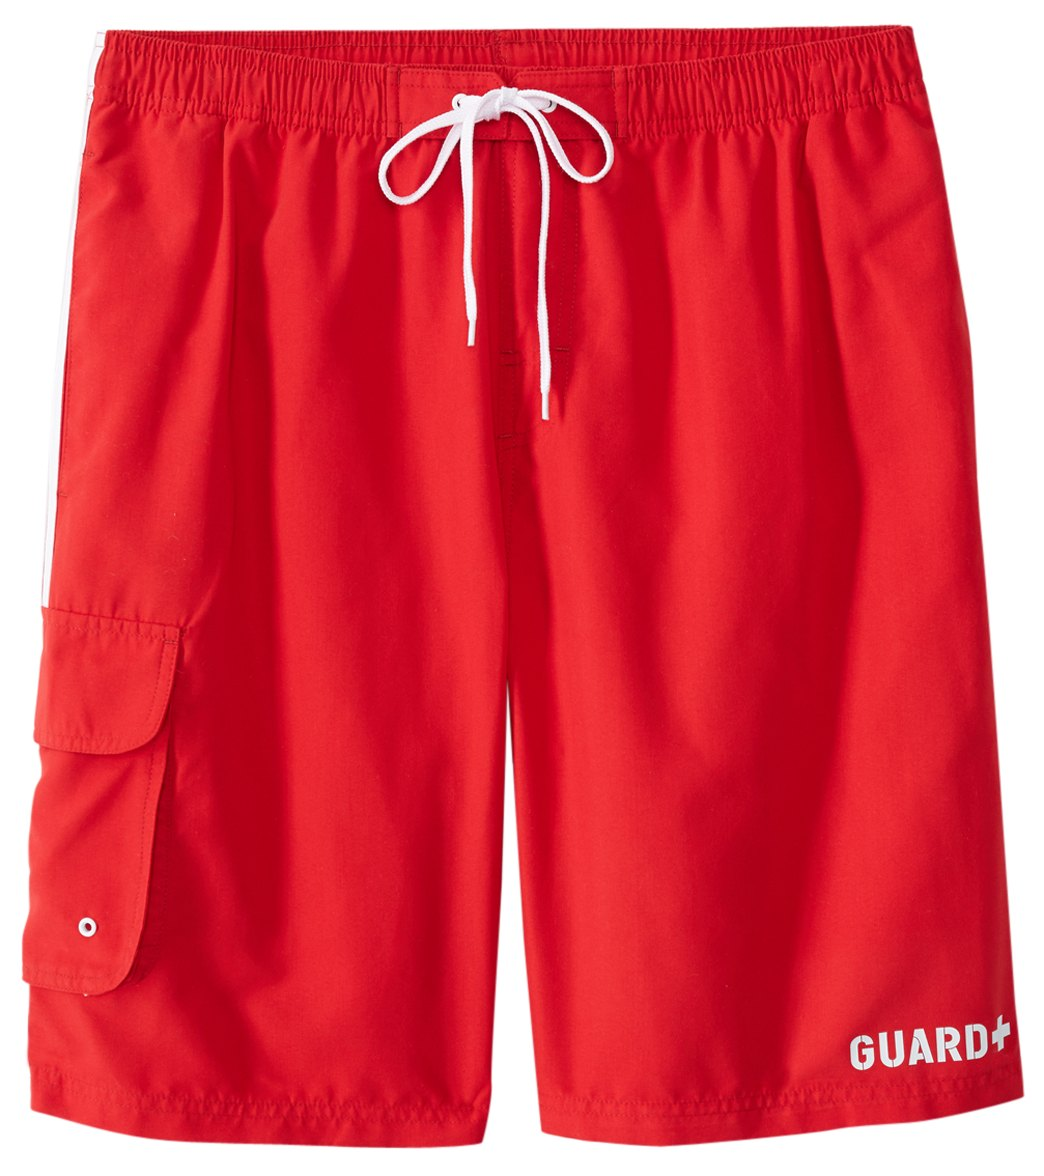 swim shorts sporti guard menu0027s cargo swim trunk at swimoutlet.com bsziupv